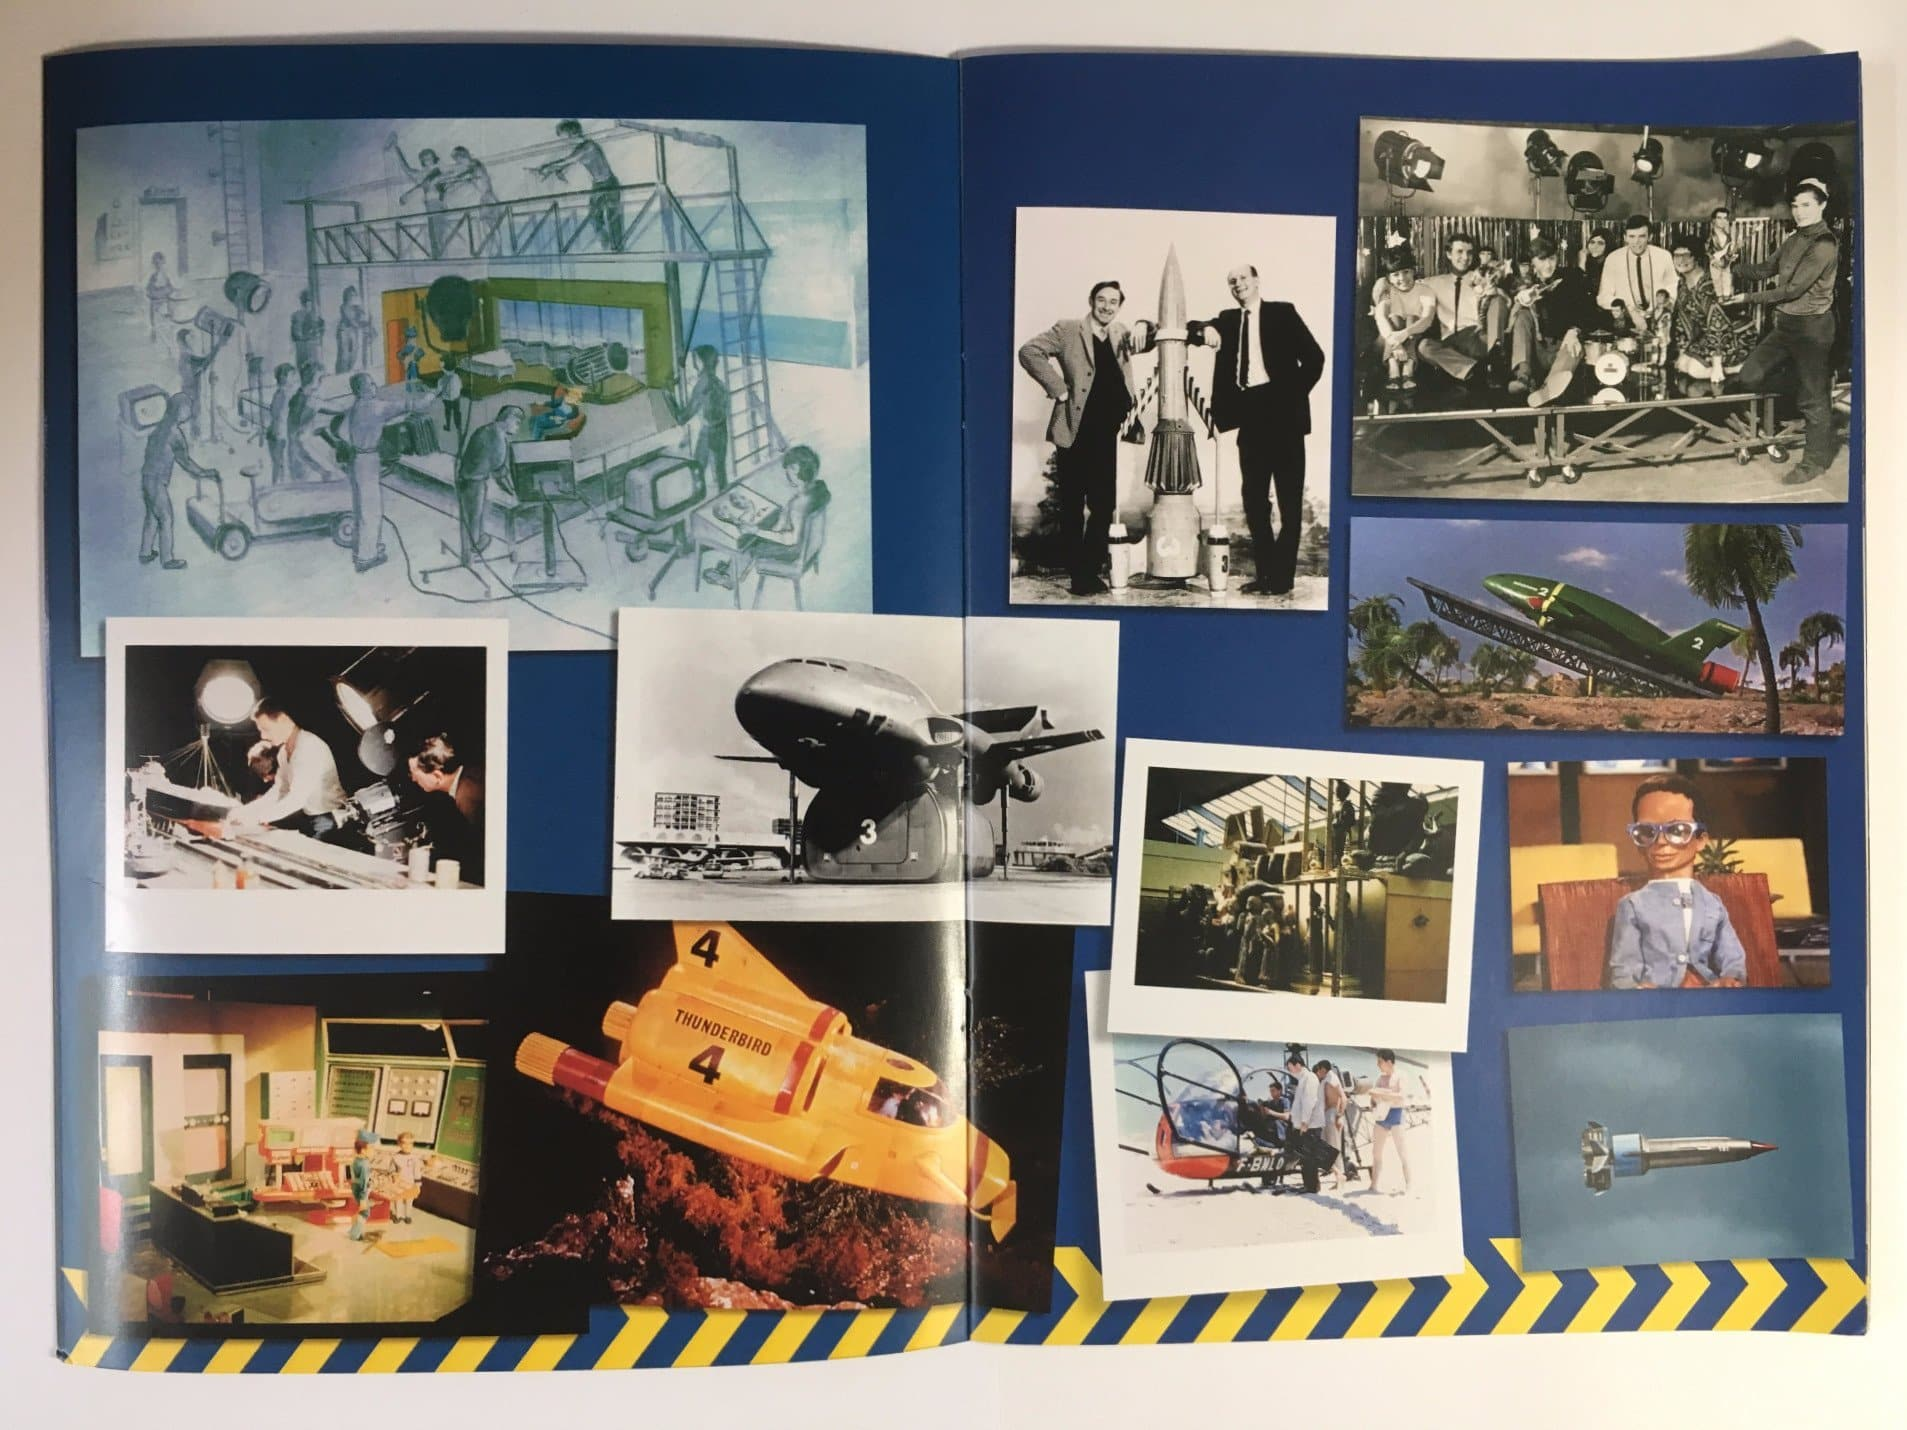 Andercon 2015 Commemorative Brochure (Gerry Anderson Convention) - The Gerry Anderson Store